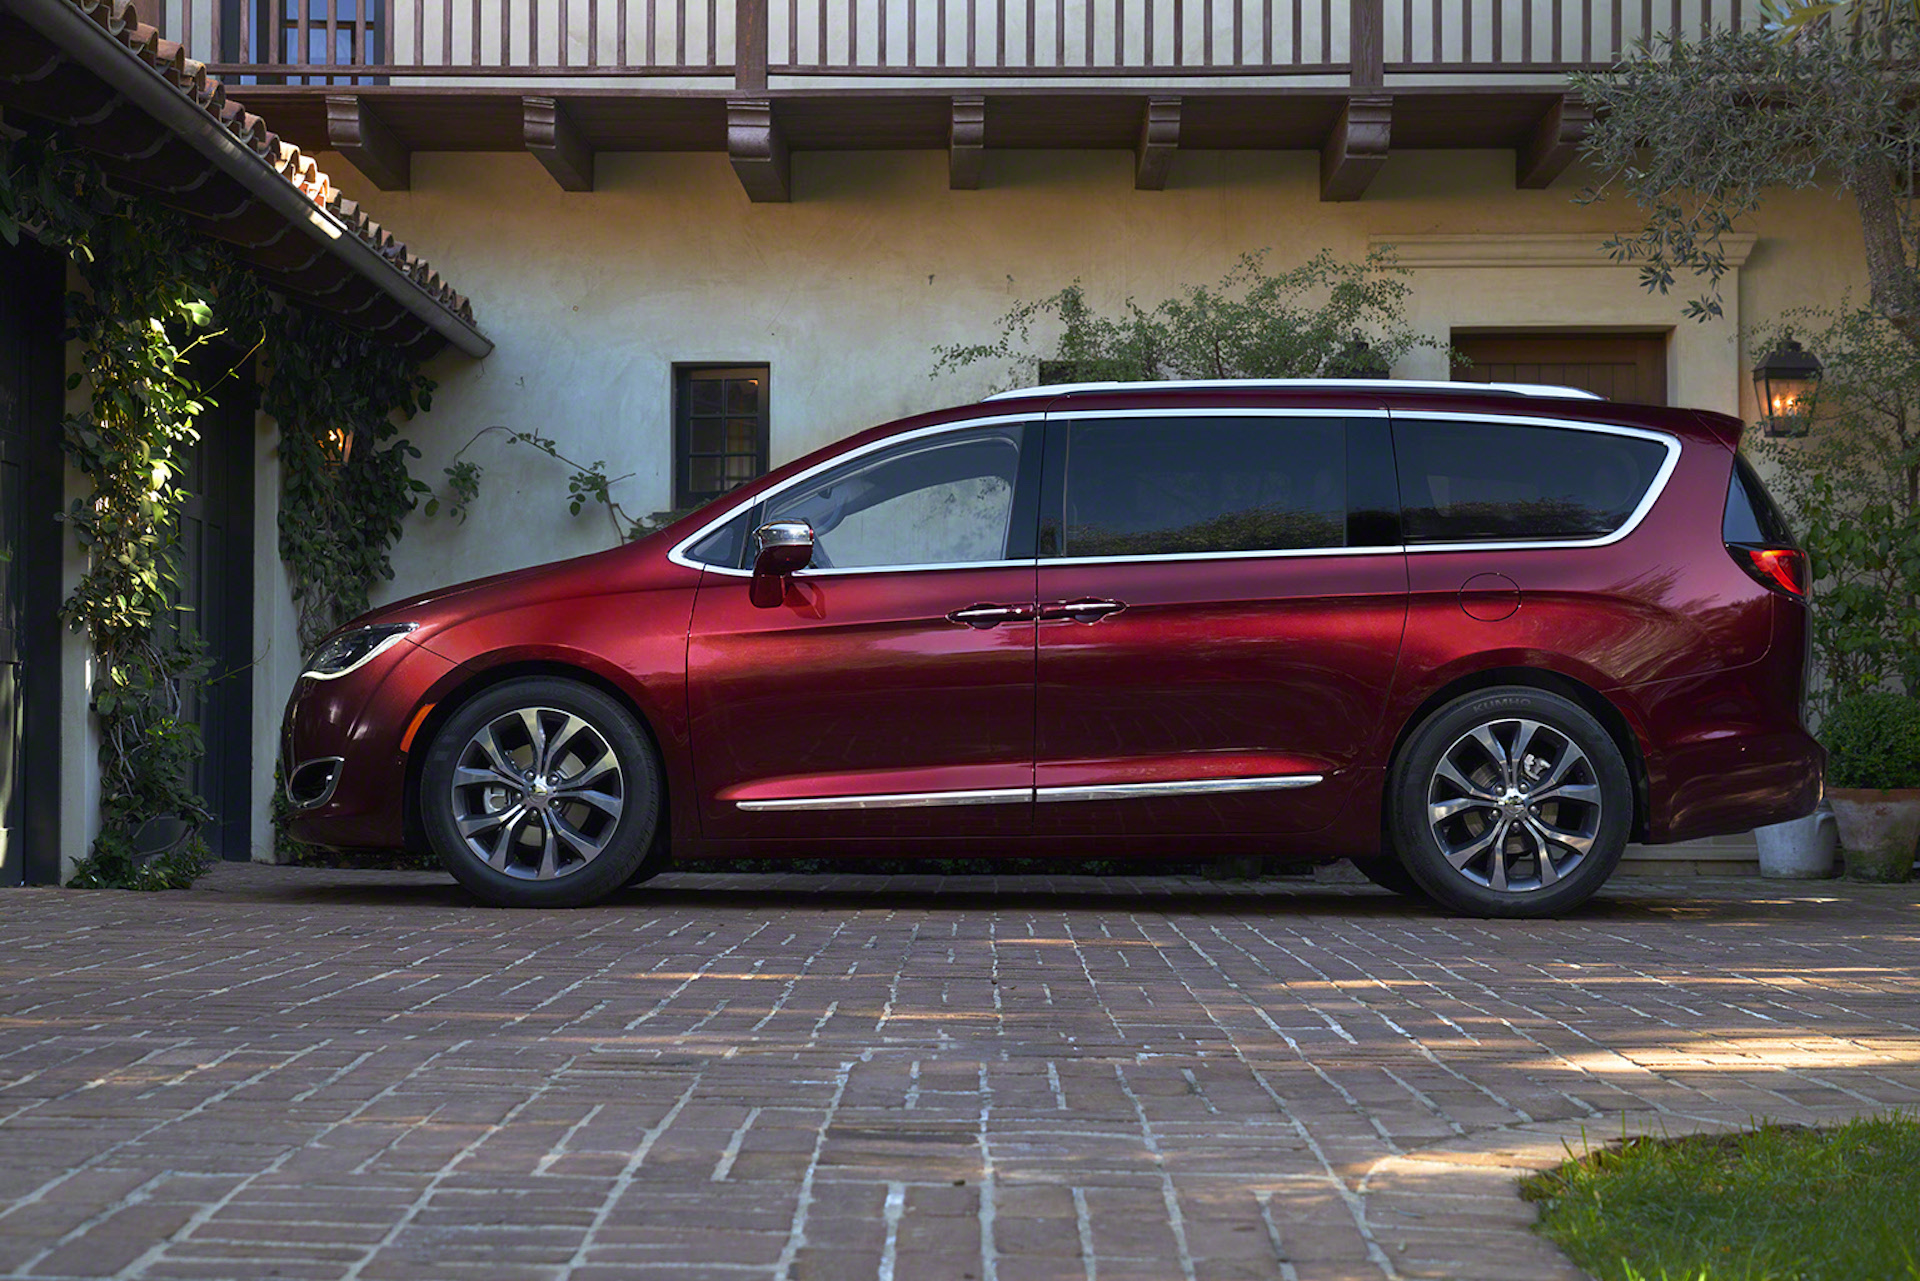 2017 chrysler pacifica gas mileage the car connection. Black Bedroom Furniture Sets. Home Design Ideas